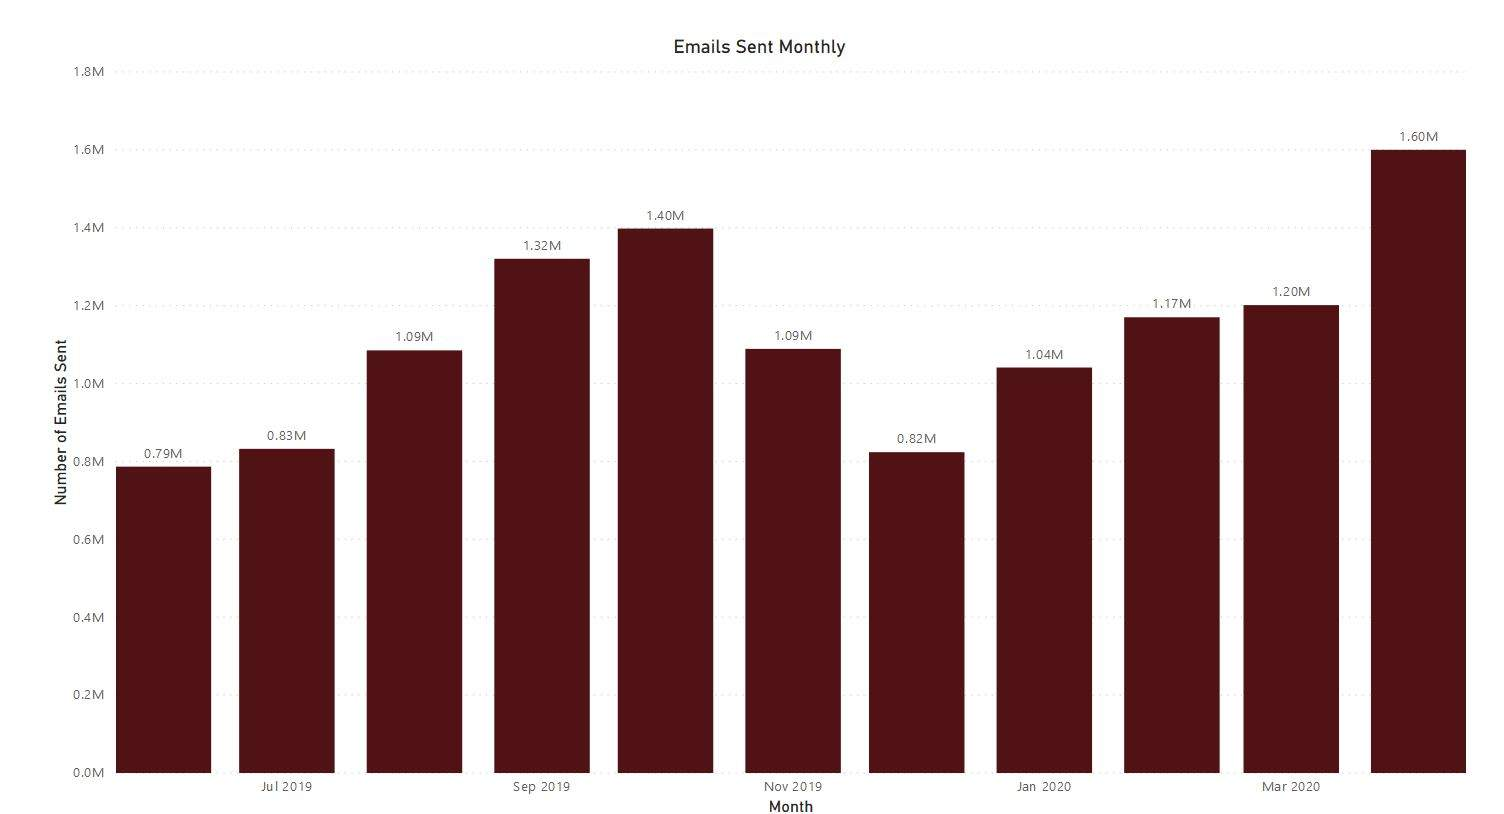 bar chart displaying number of emails sent monthly